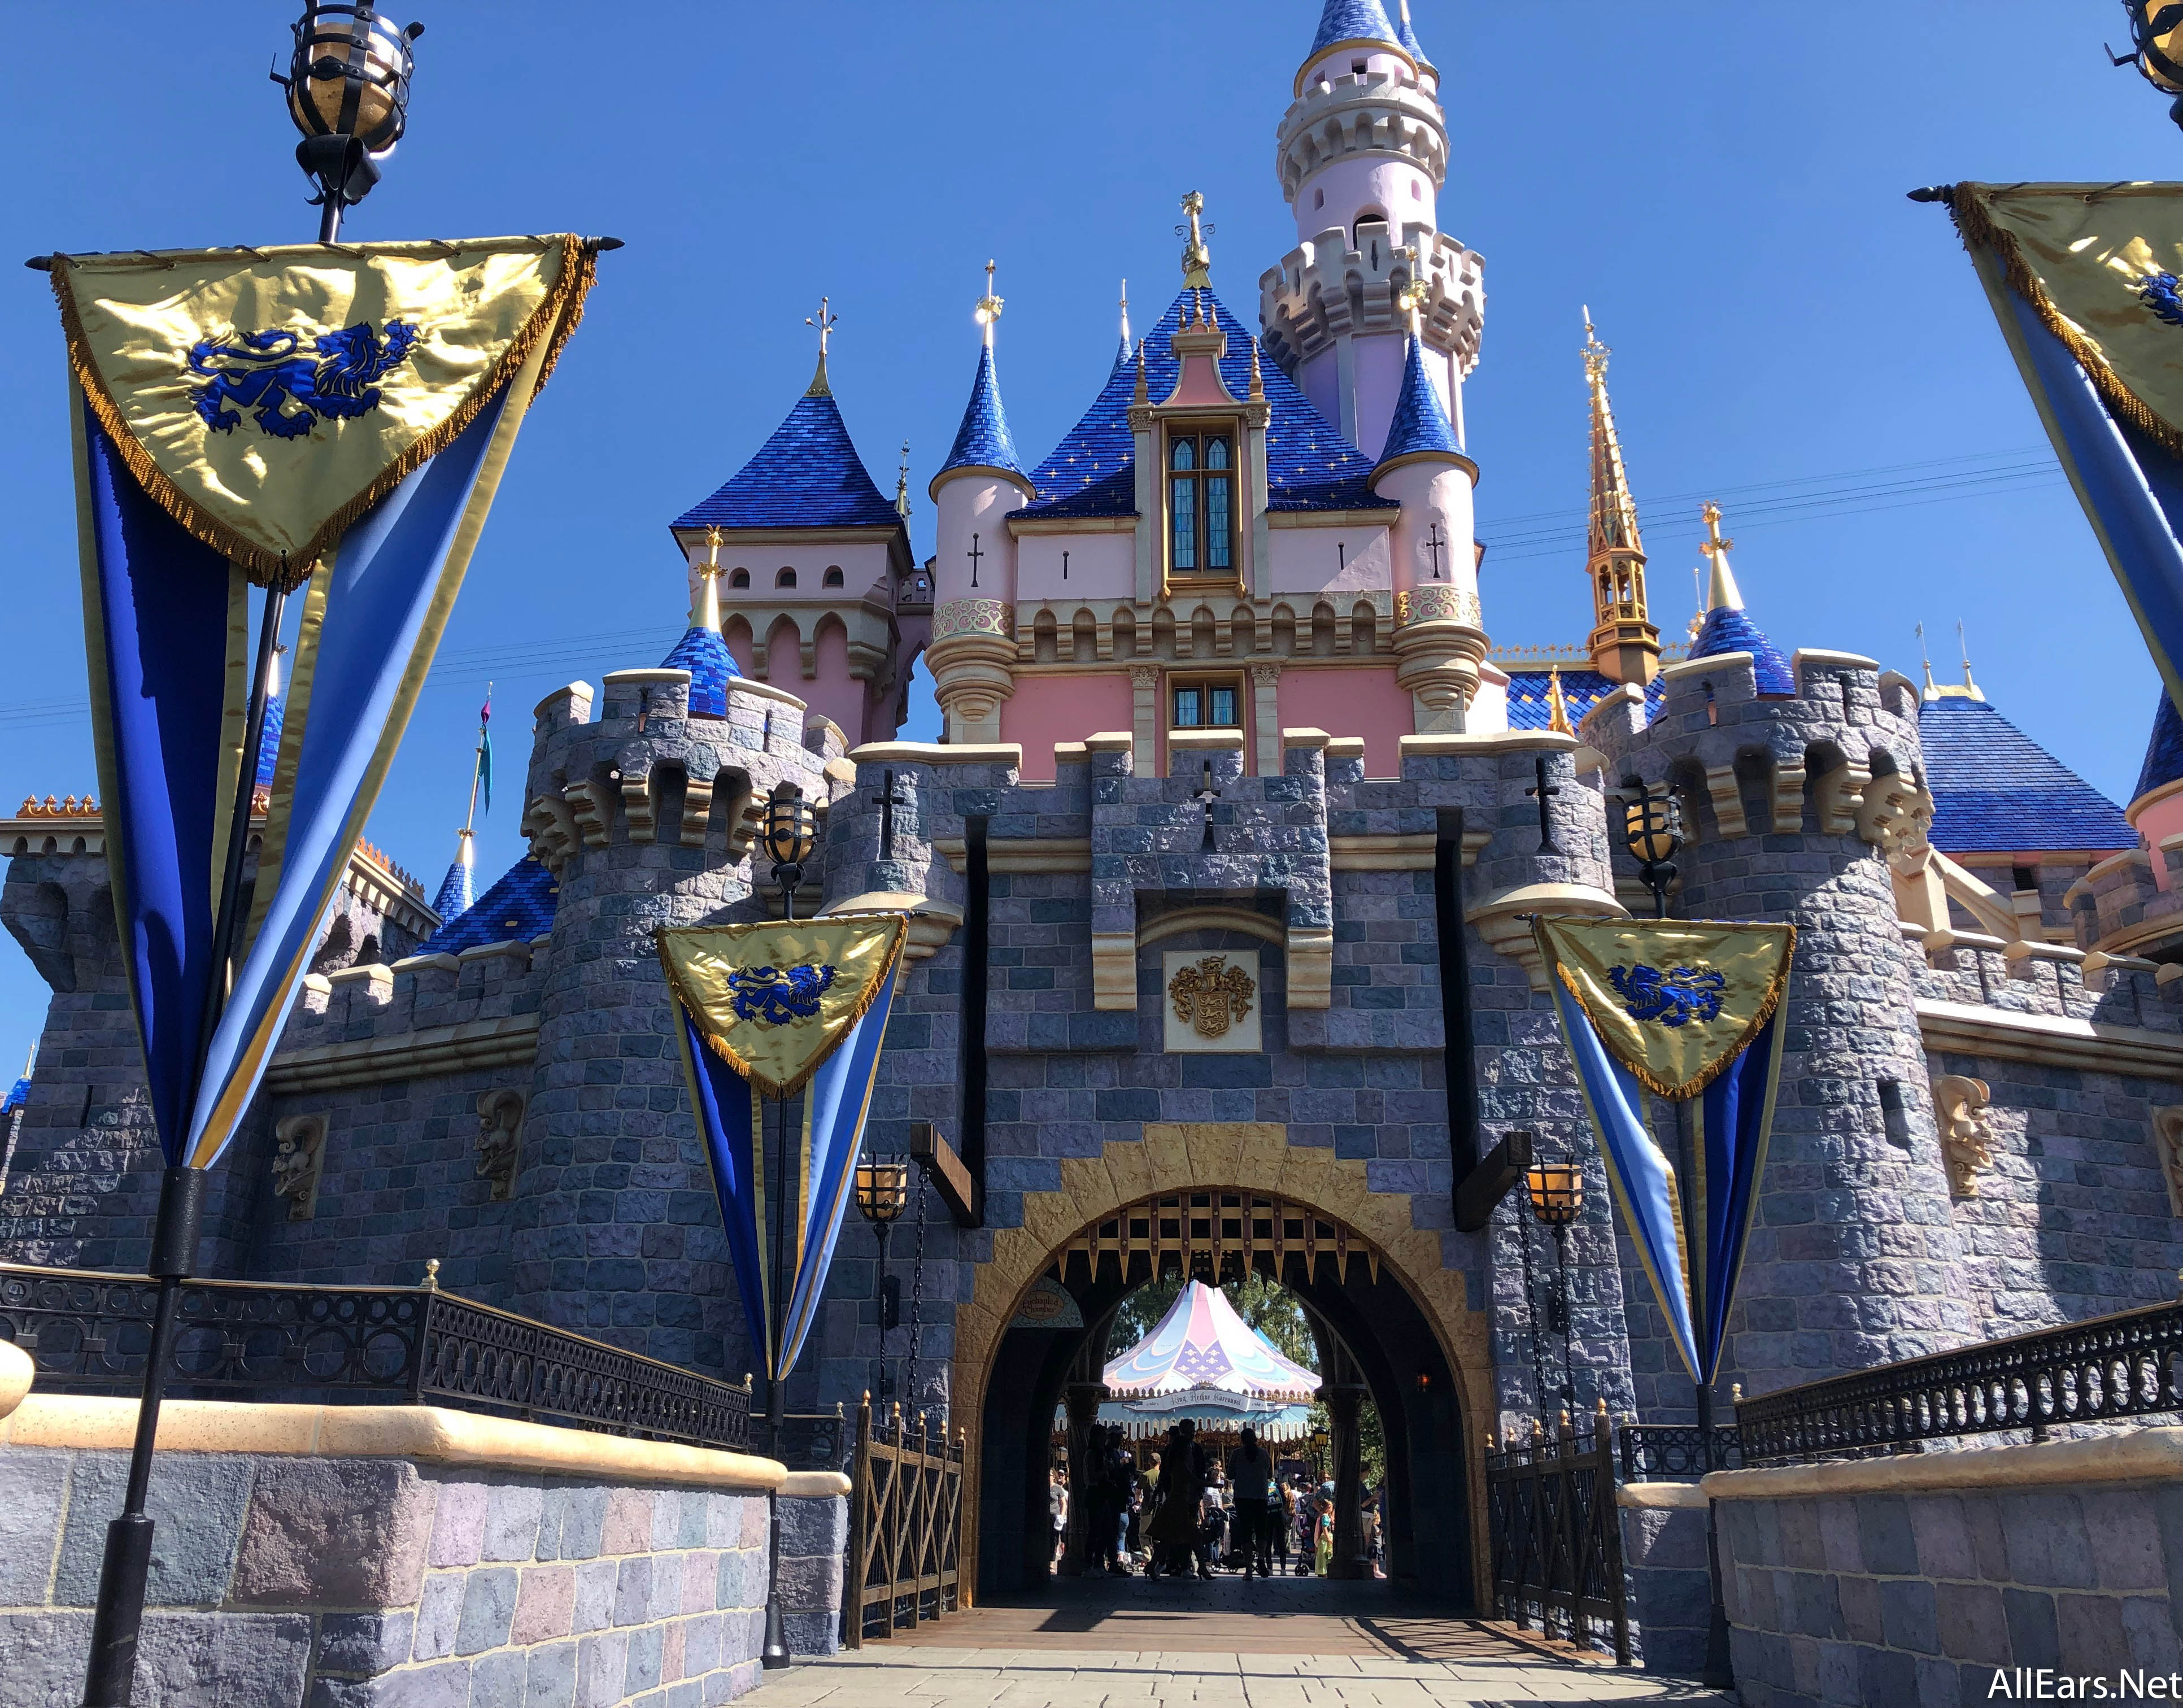 Disneyland's Sleeping Beauty Castle Opens After Months of ...